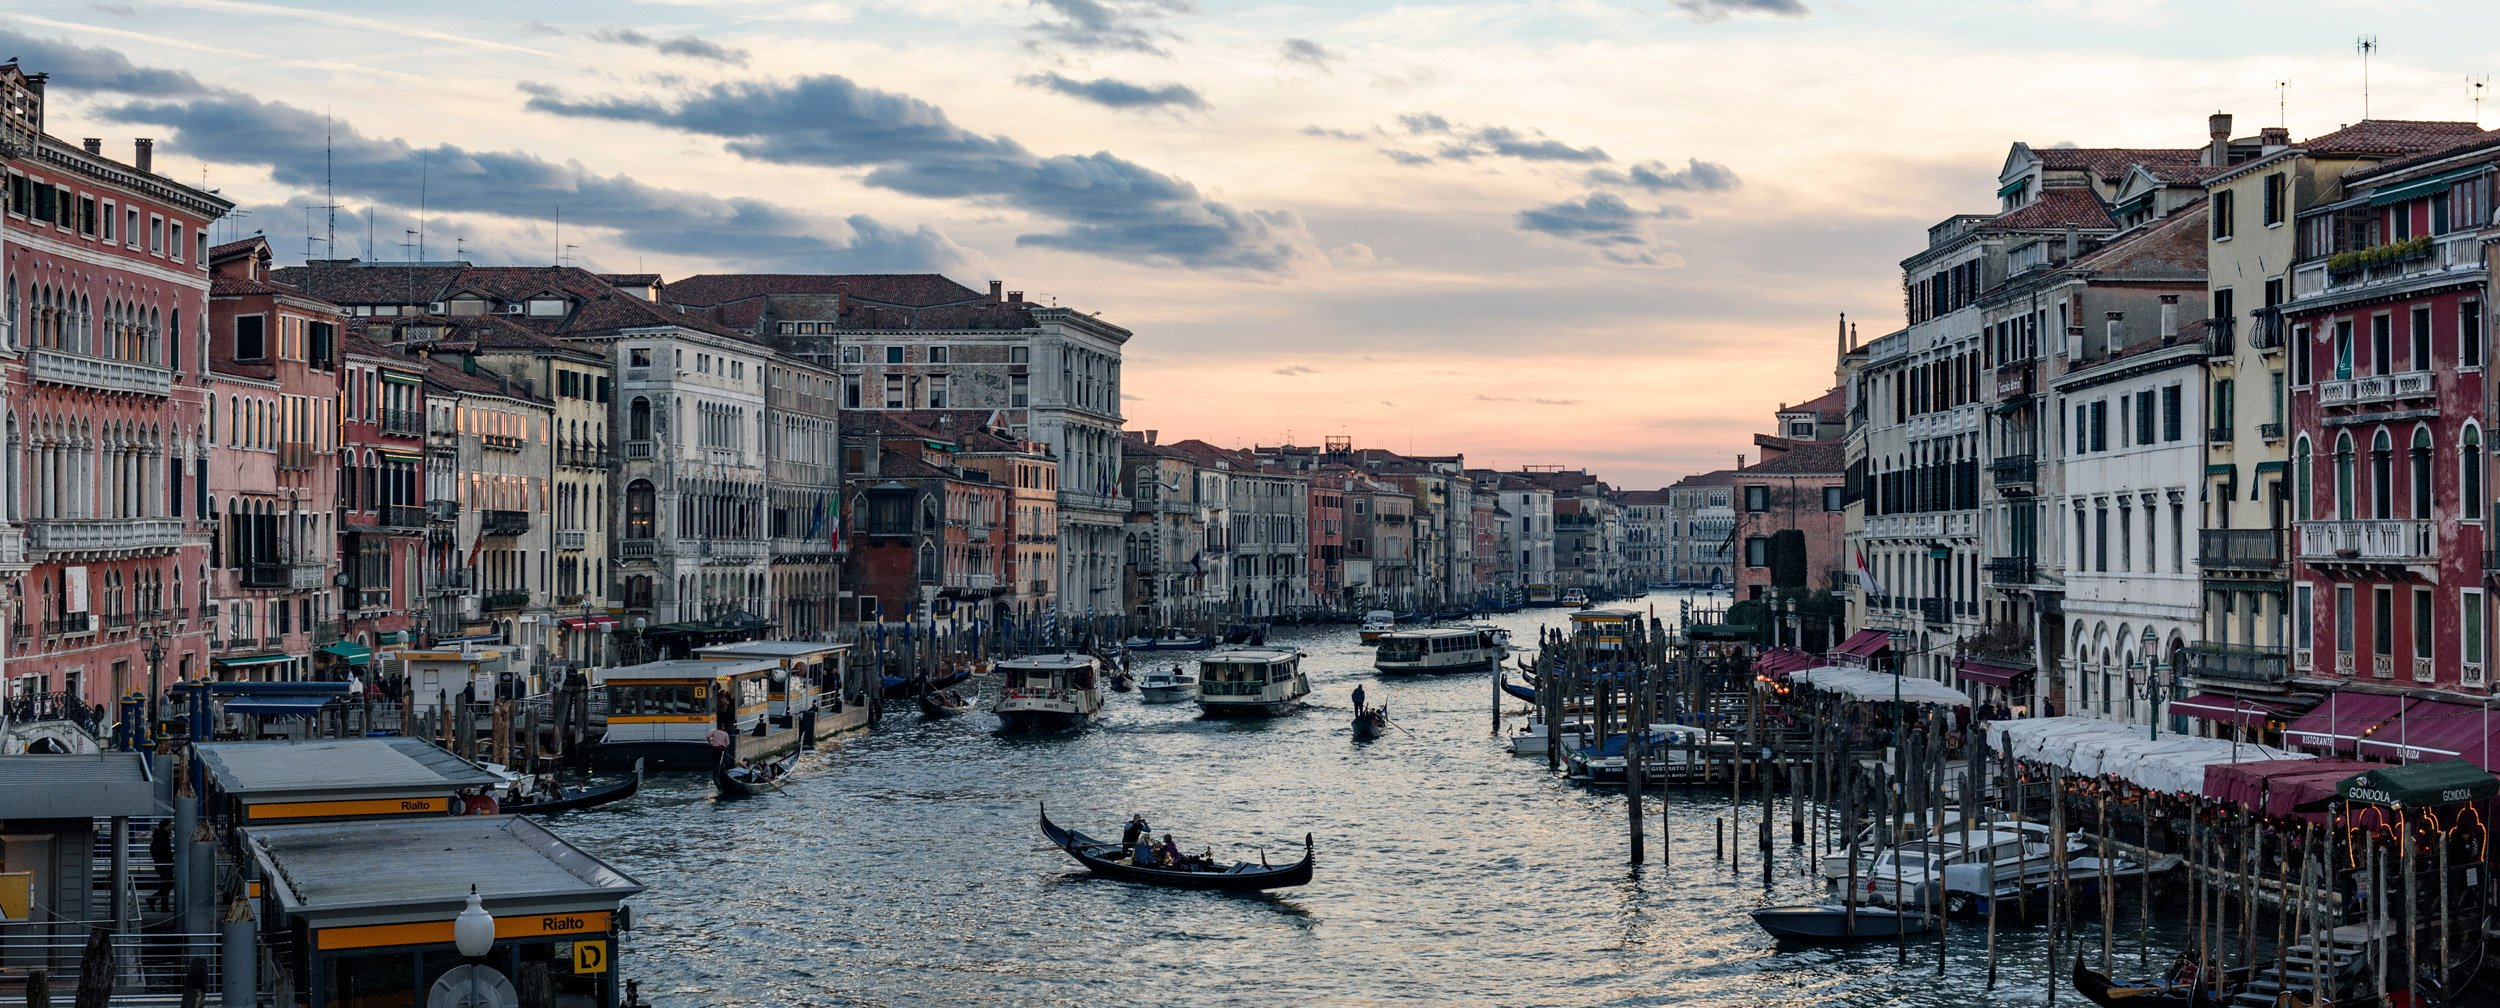 venice italy photographer photographs the grand canal in Venice